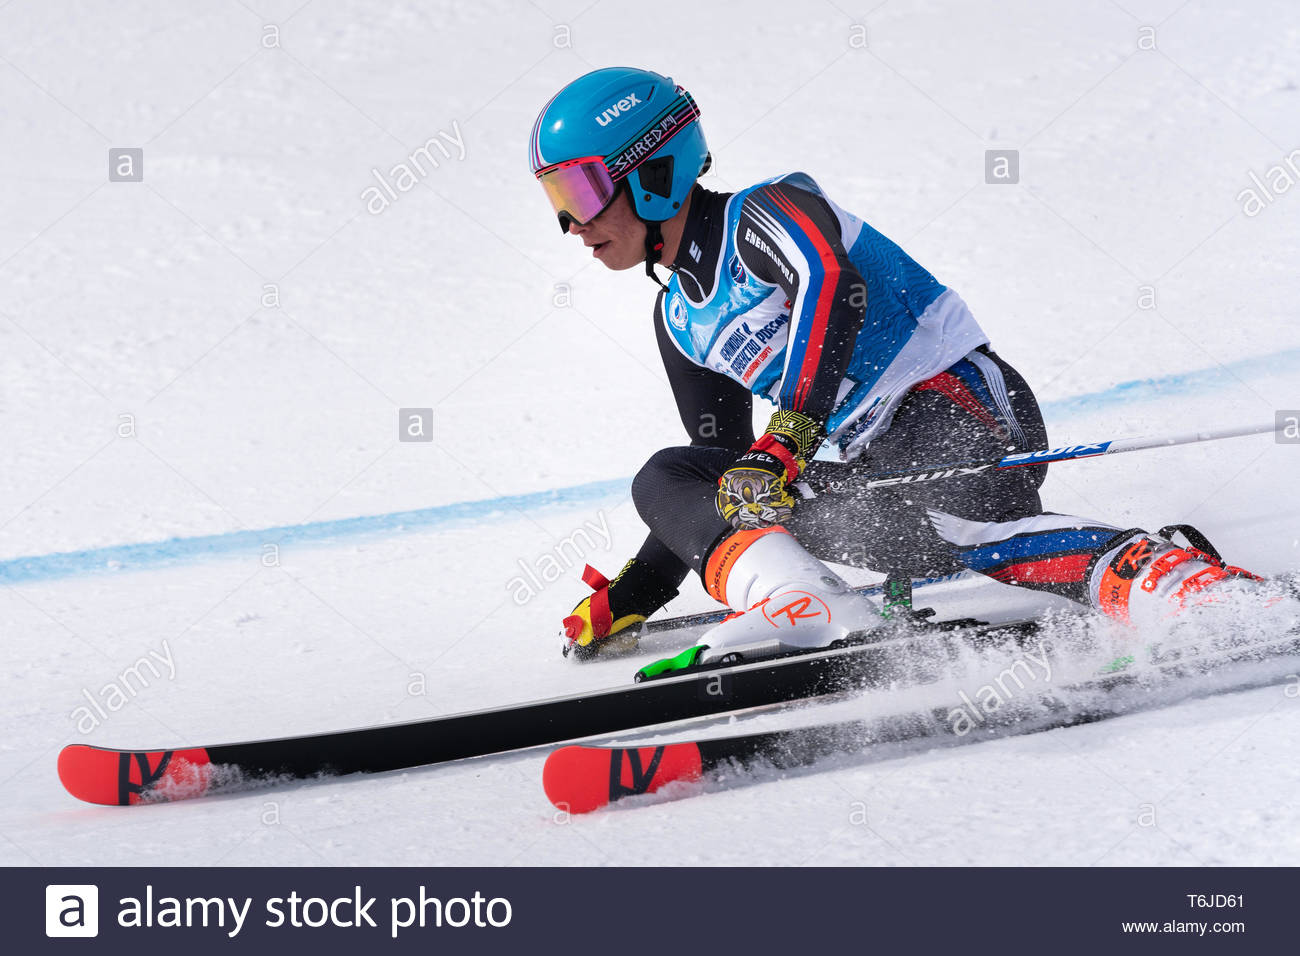 KAMCHATKA PENINSULA, RUSSIA - APR 1, 2019: Mountain skier Maxim Sitchikhin (Kamchatka) skiing down mount slope. Russian Alpine Skiing Cup, Internation - Stock Image